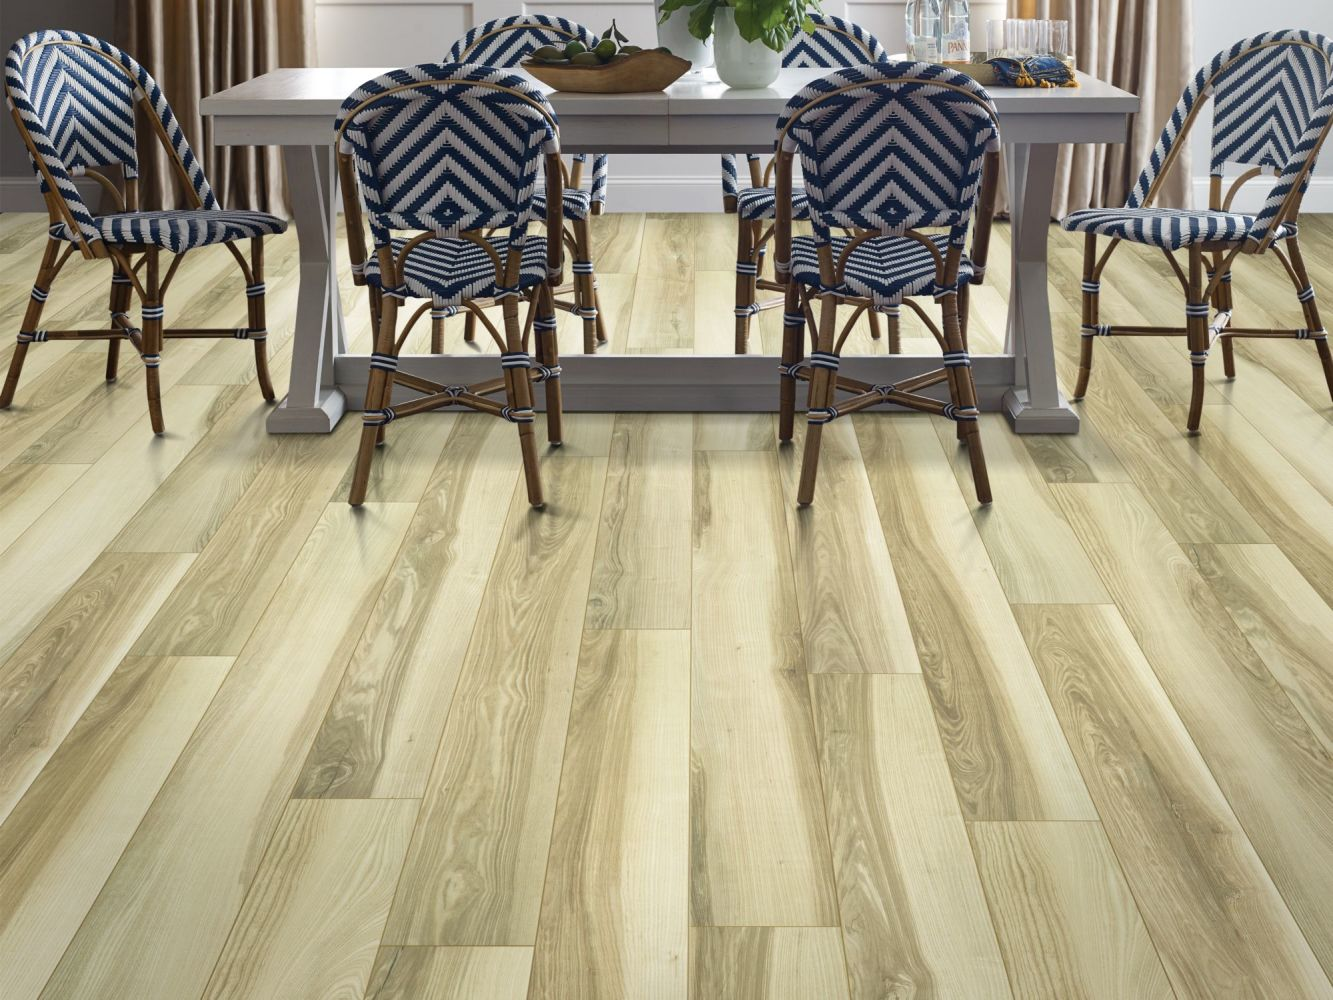 Shaw Floors Resilient Property Solutions Resolute XL HD Plus Natural Butternut 00259_VE387